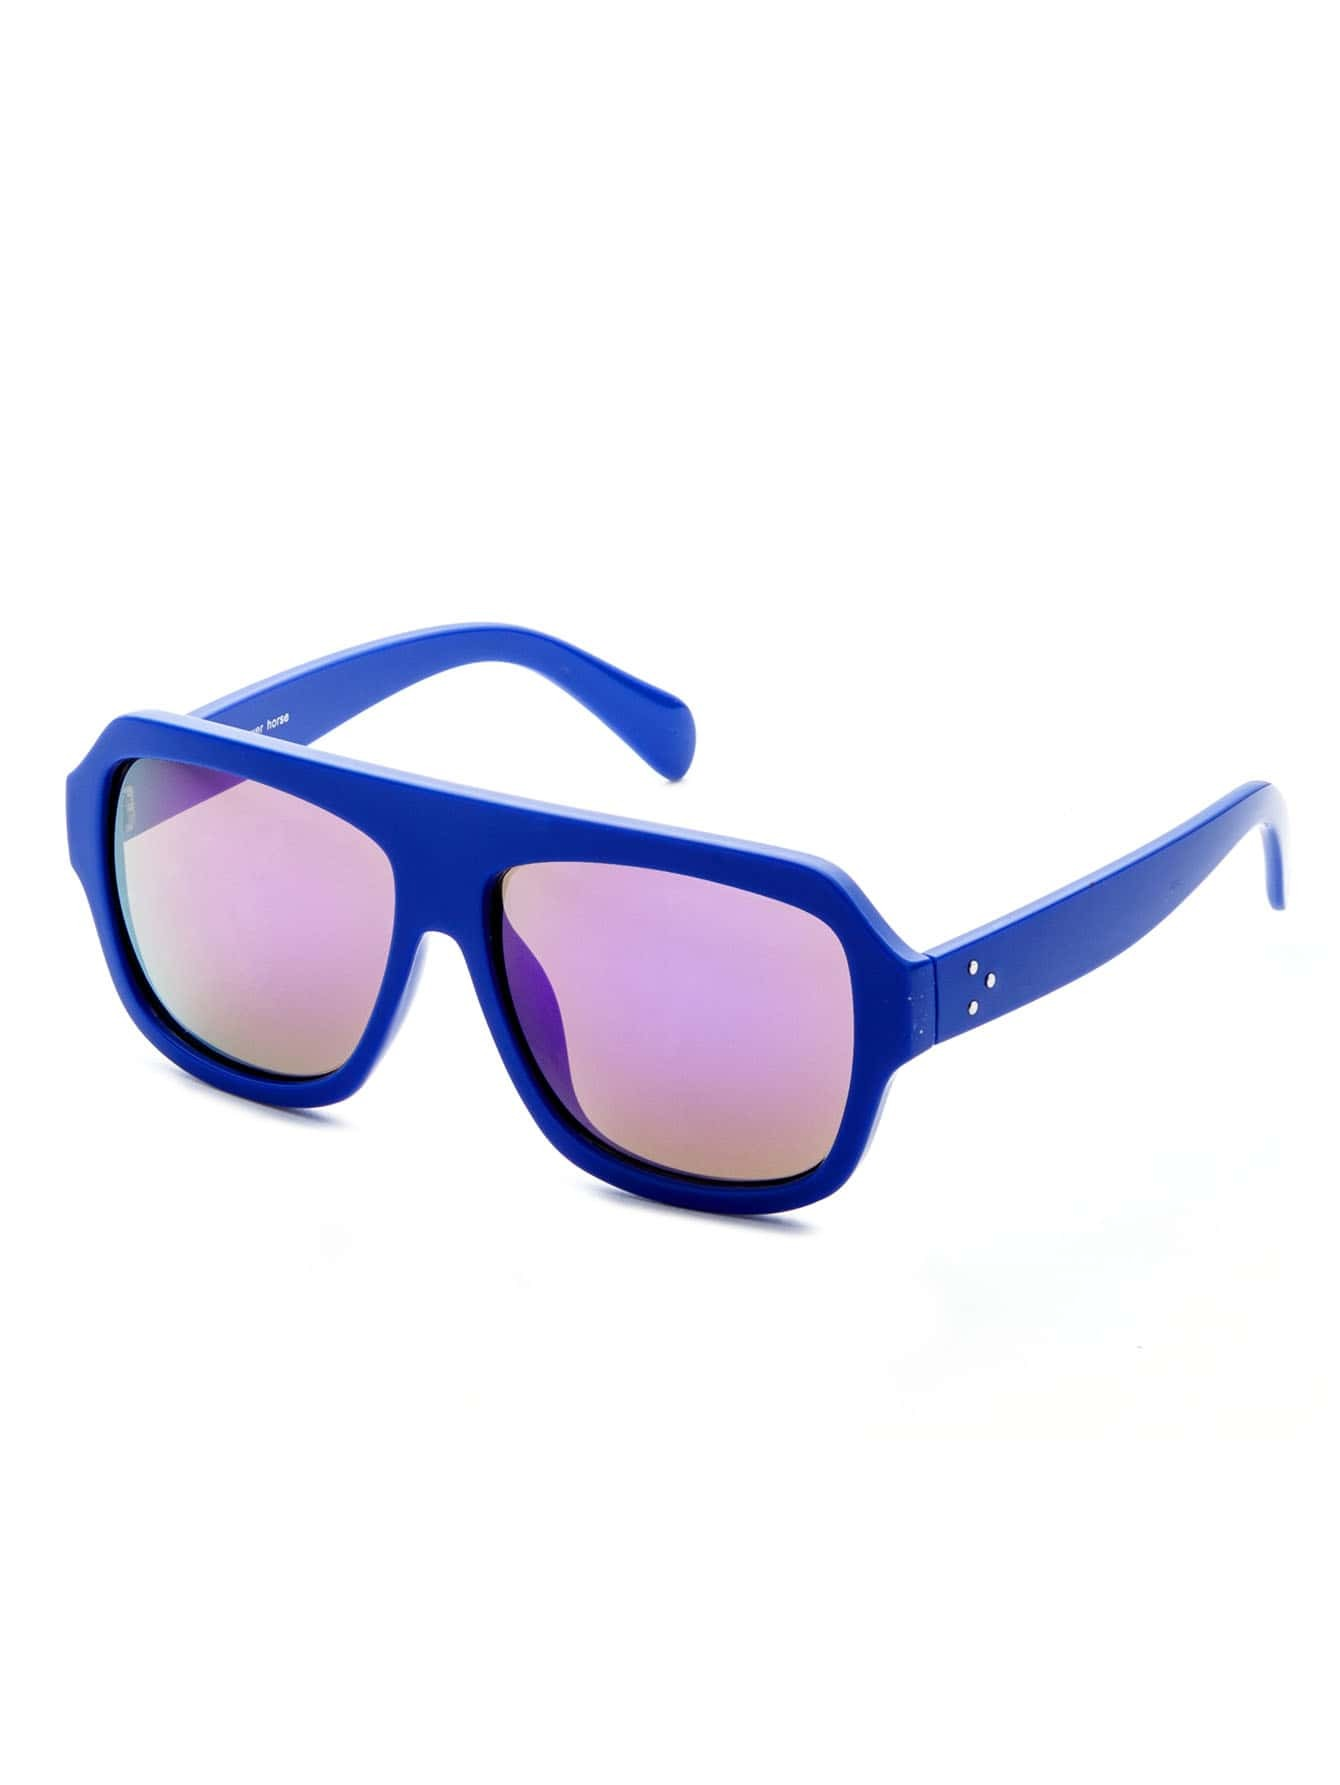 Blue Frame Large Lens Sunglasses sunglass161013308